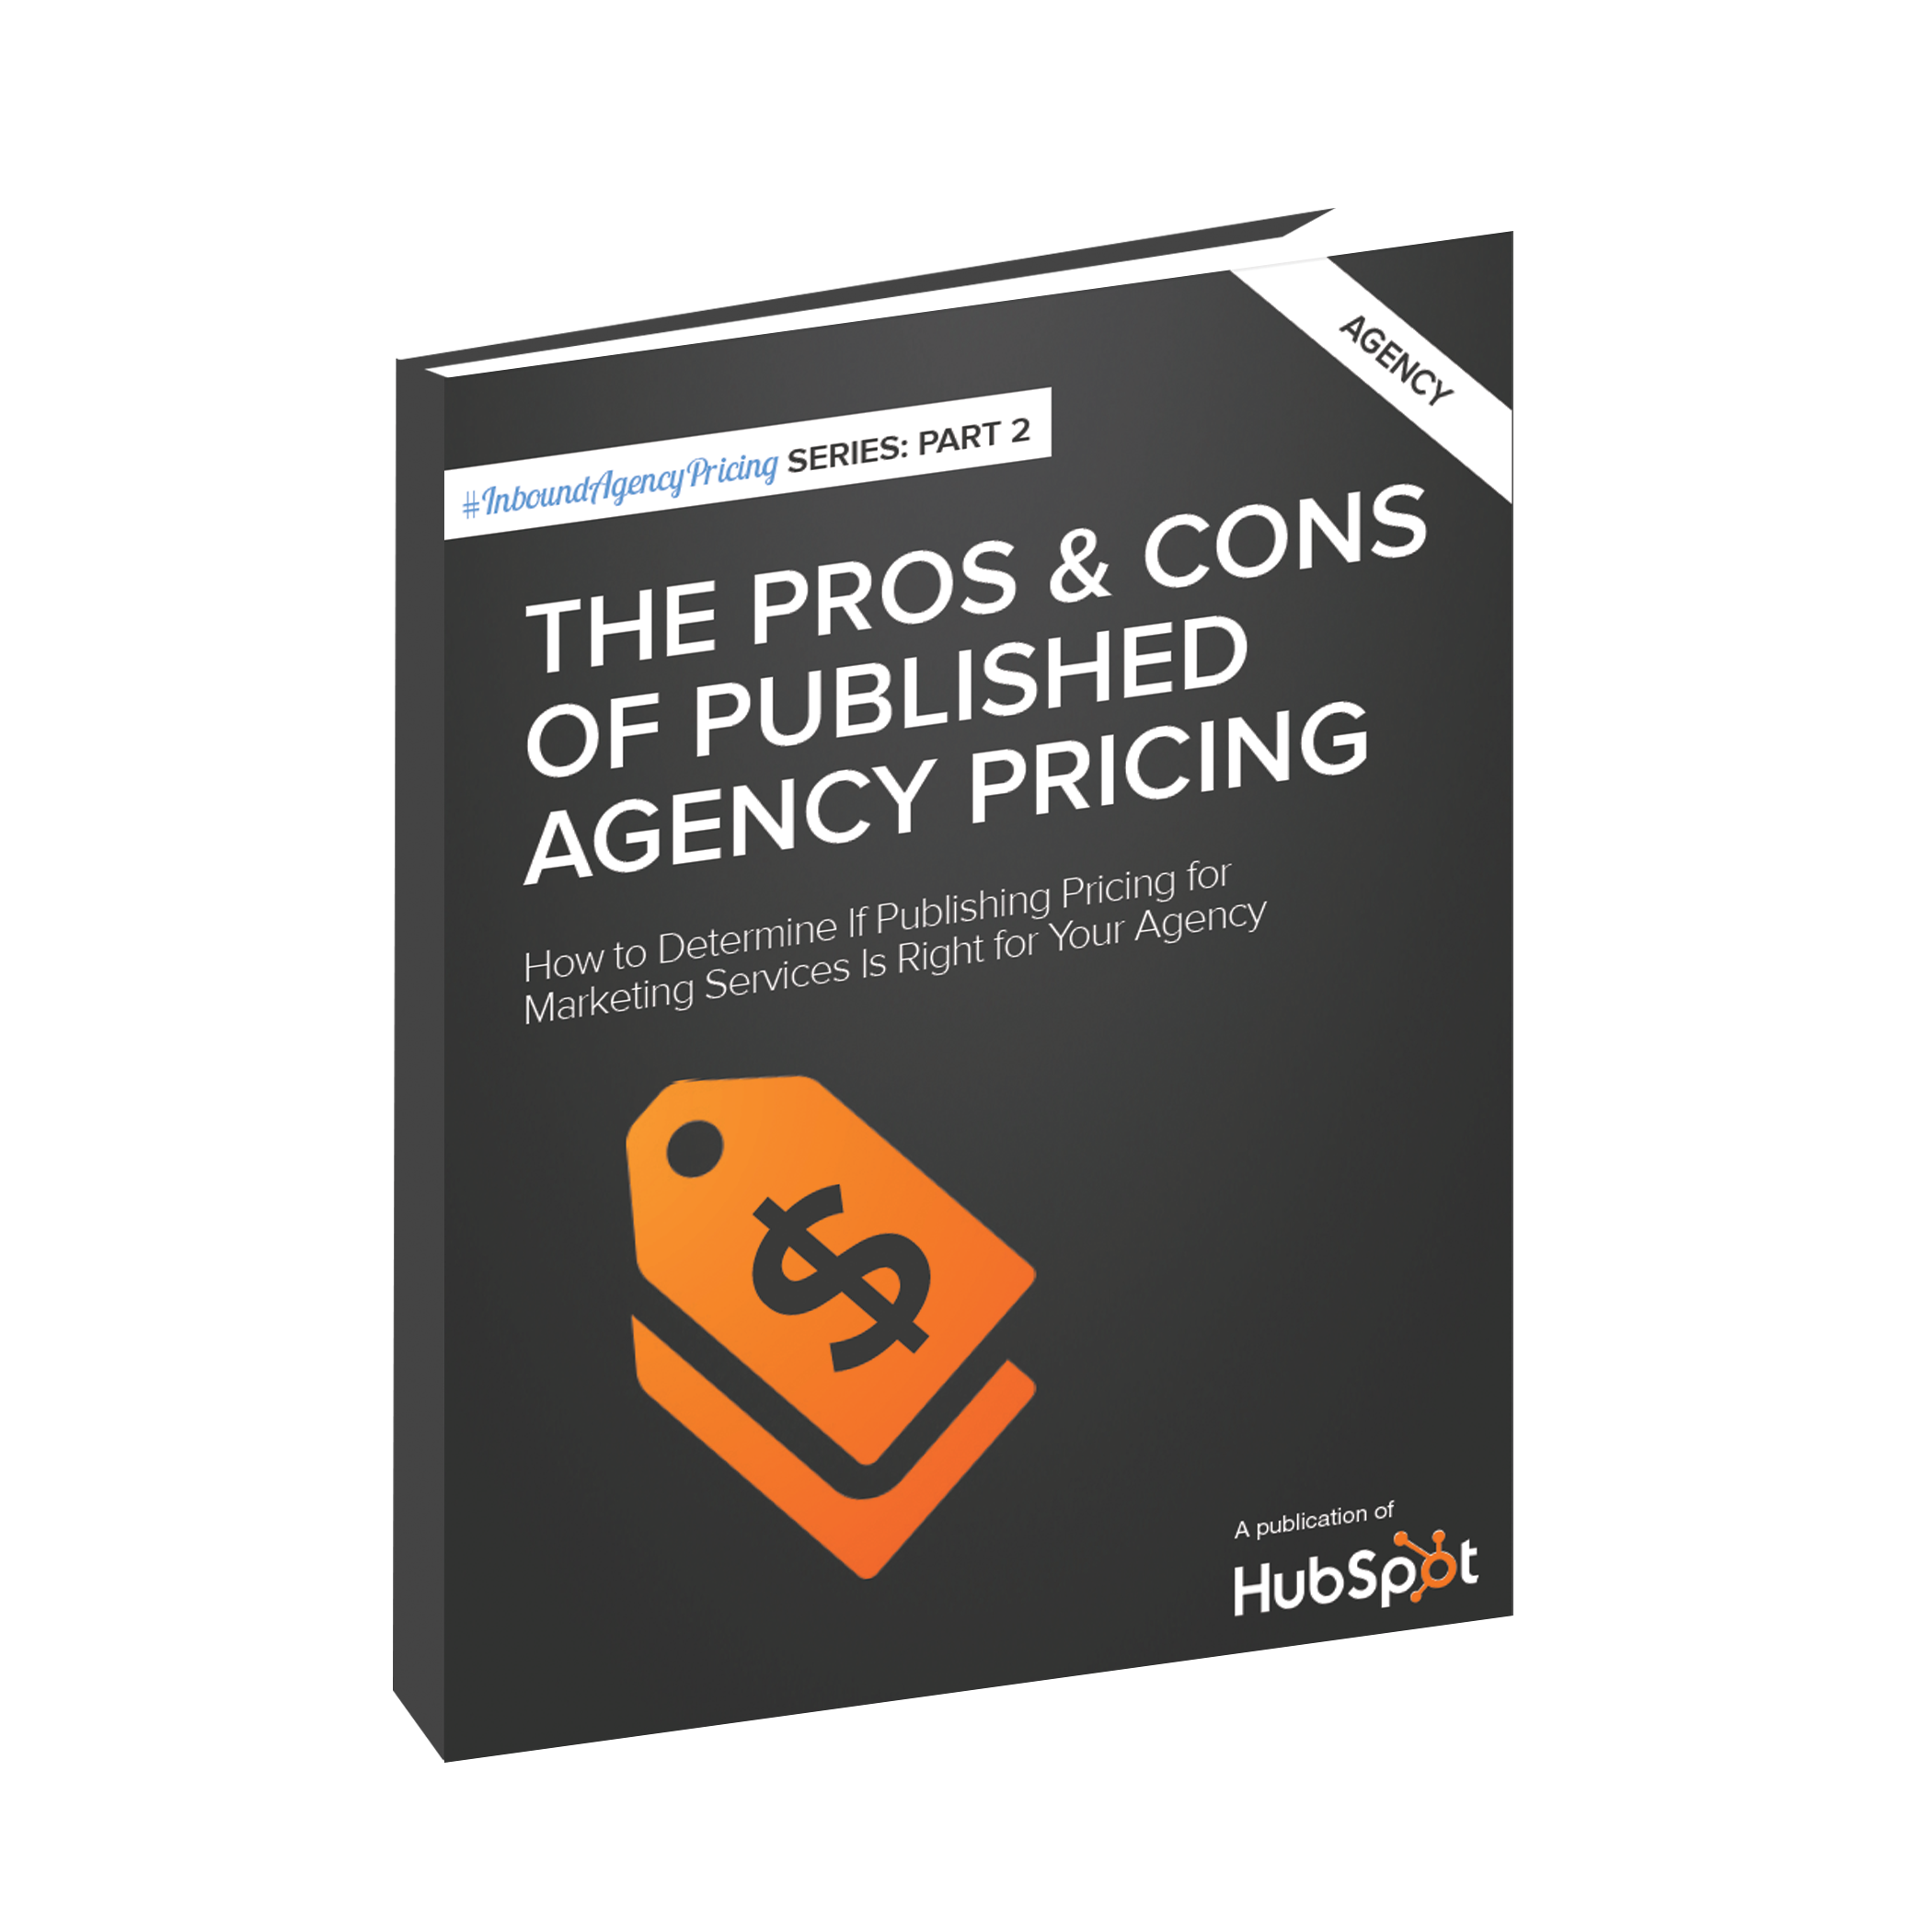 pros_and_cons_of_published_agency_pricing_promo